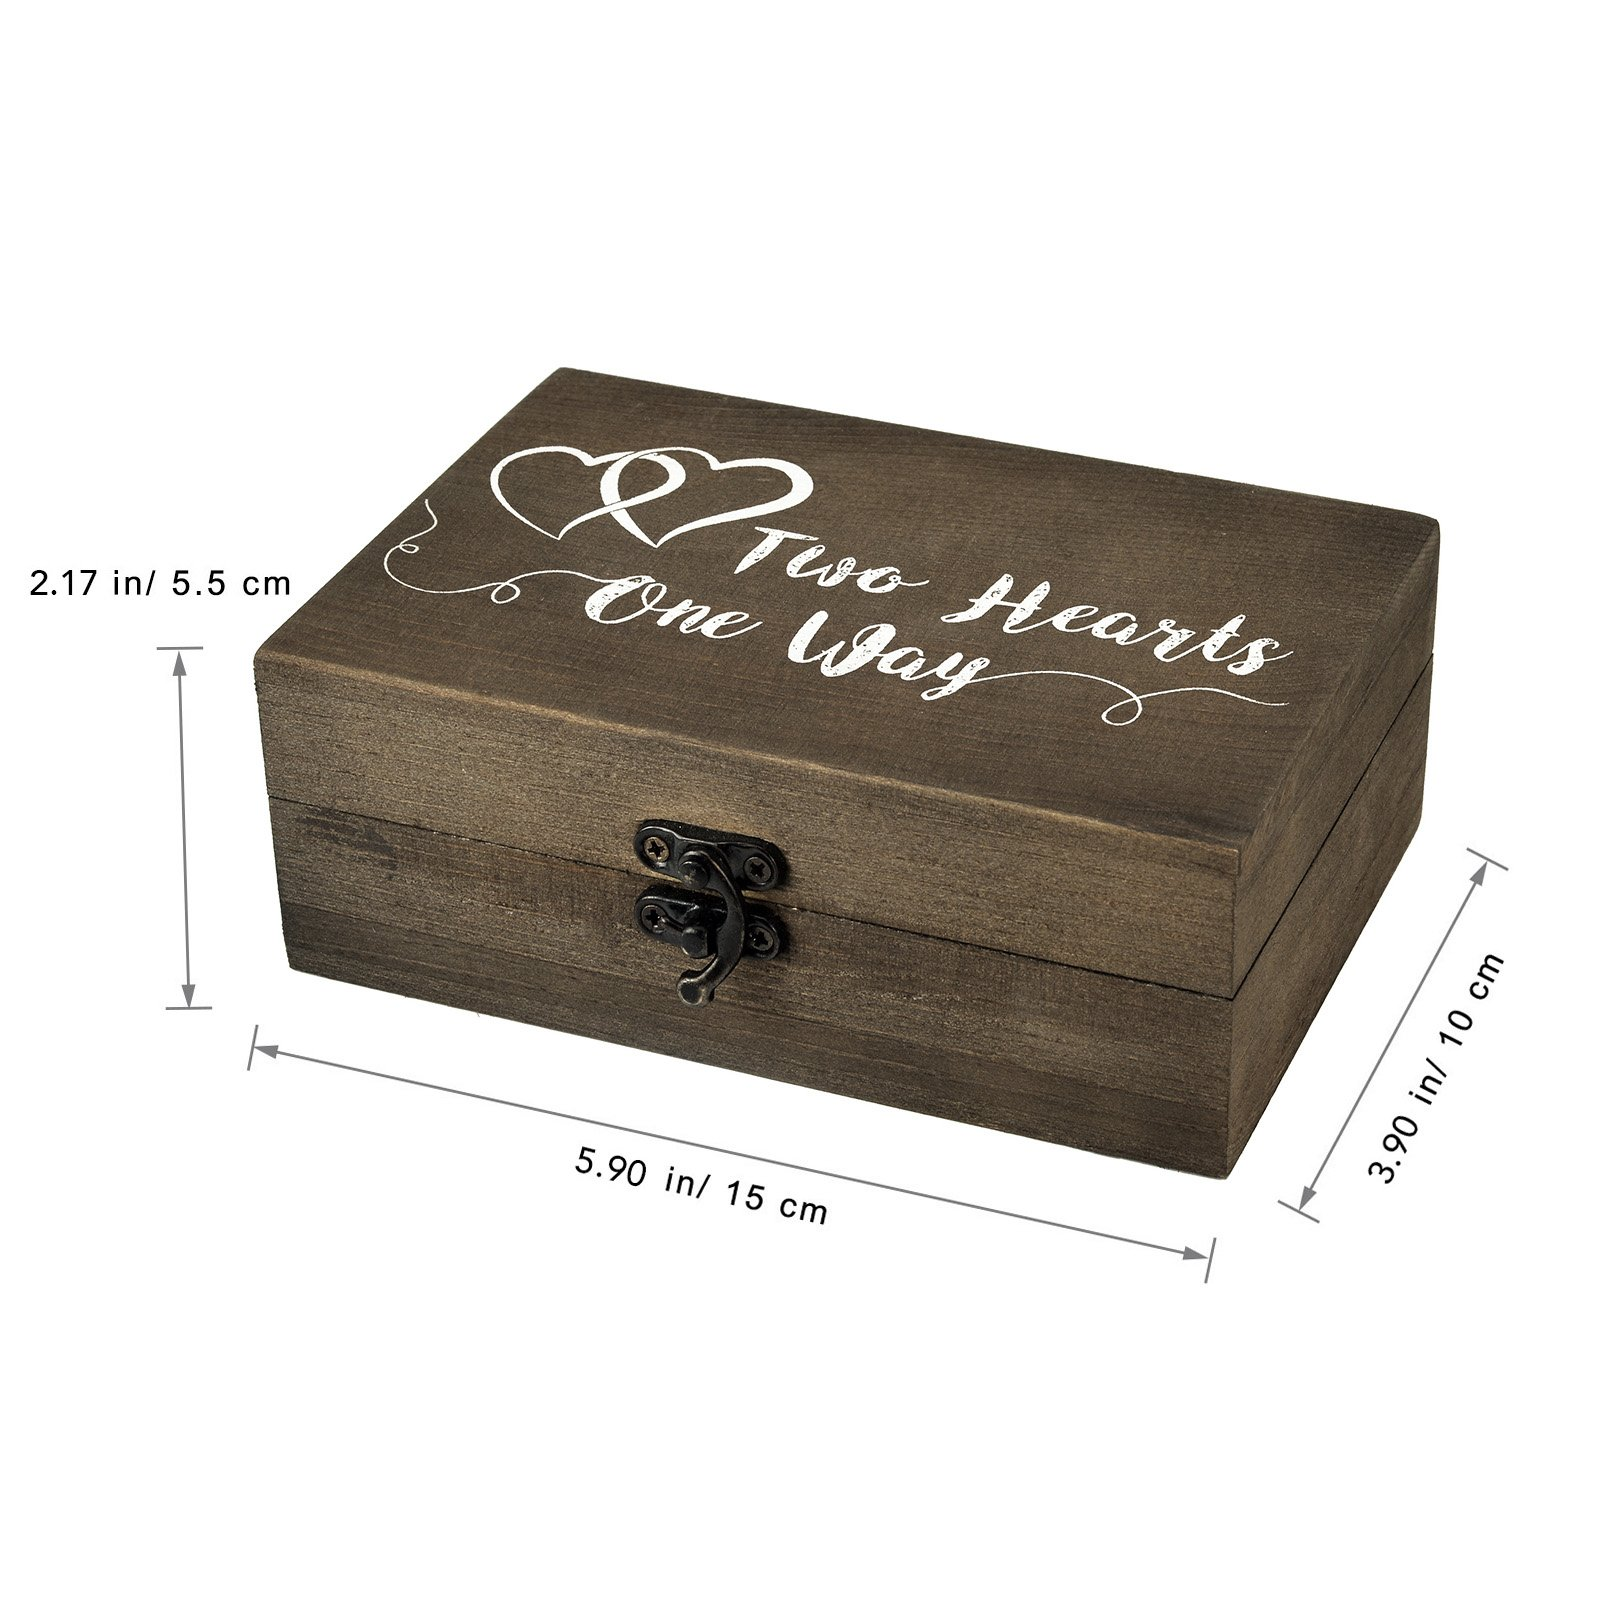 AW Wood Ring Box Rustic Ring Bearer Holder Decorative Wedding Engagement Jewelry Boxes 5.9'' x 3.9'' x 2.17'' by AWEI (Image #7)